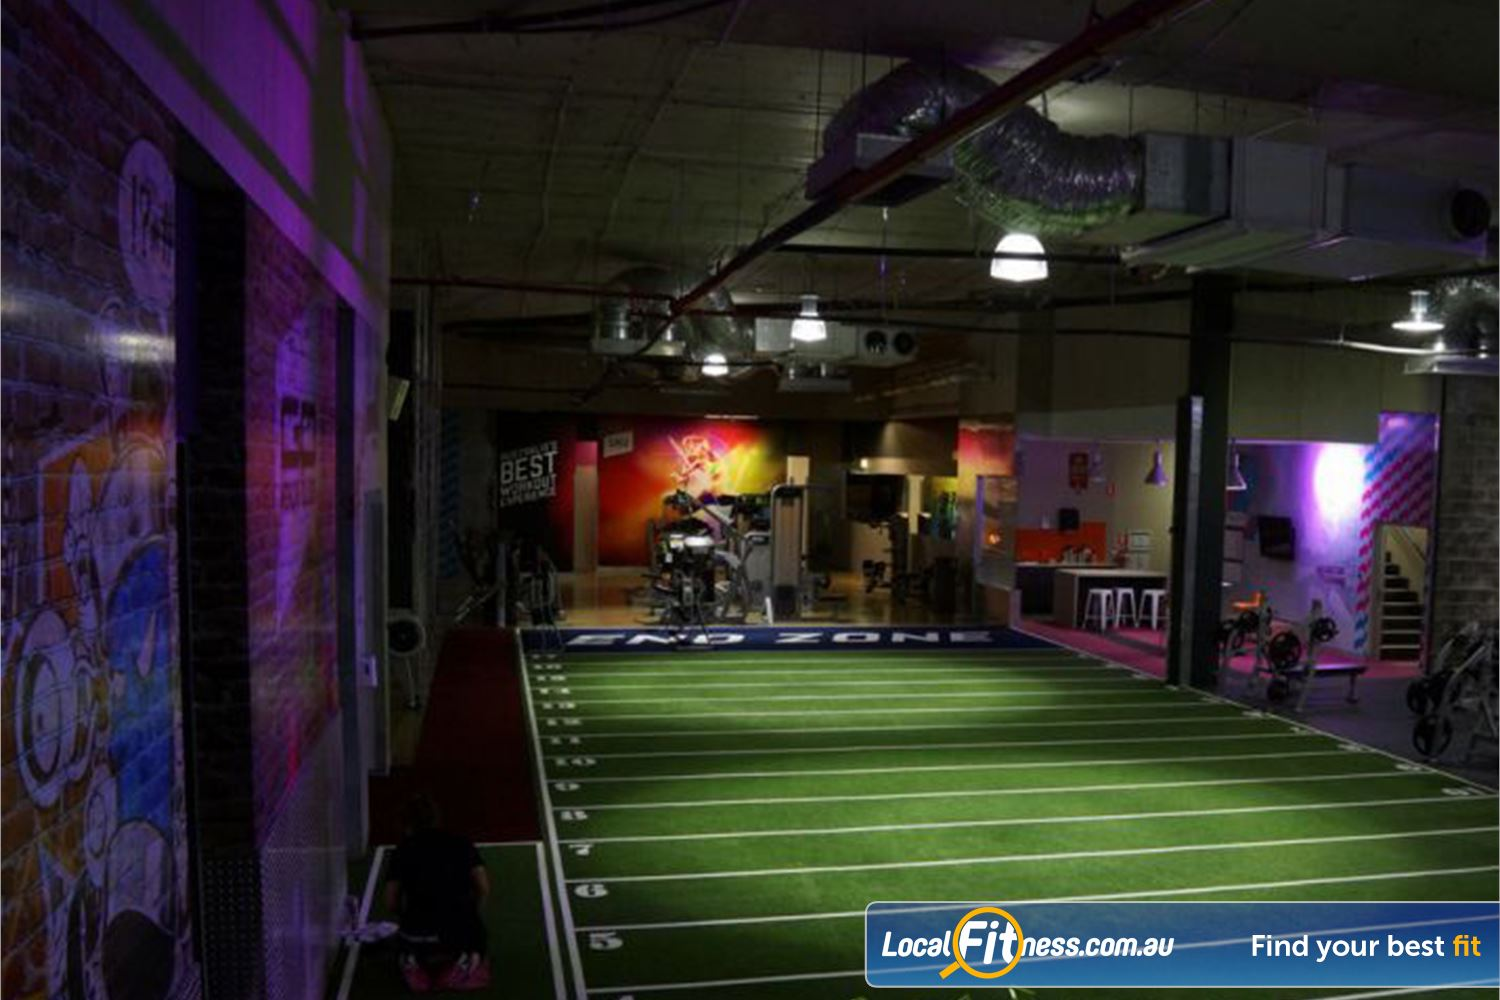 Goodlife Health Clubs Near Holmview The dedicated functional training and Beenleigh HIIT gym space.